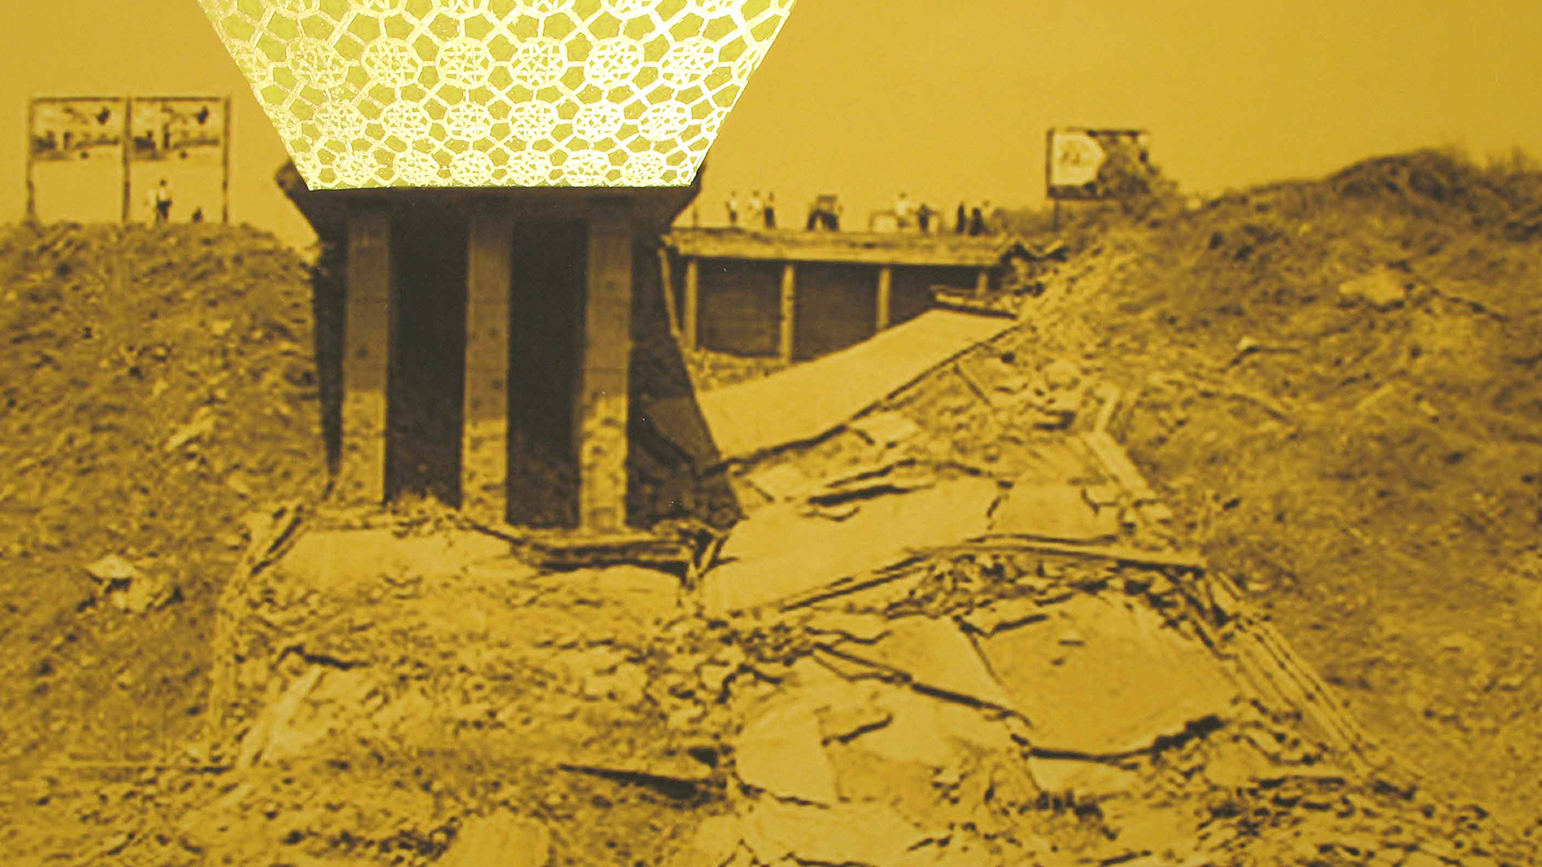 A photograph in yellow and brown tones showing a collapsed bridge. Above the bridge a pattern appears in a truncated upside down pyramid